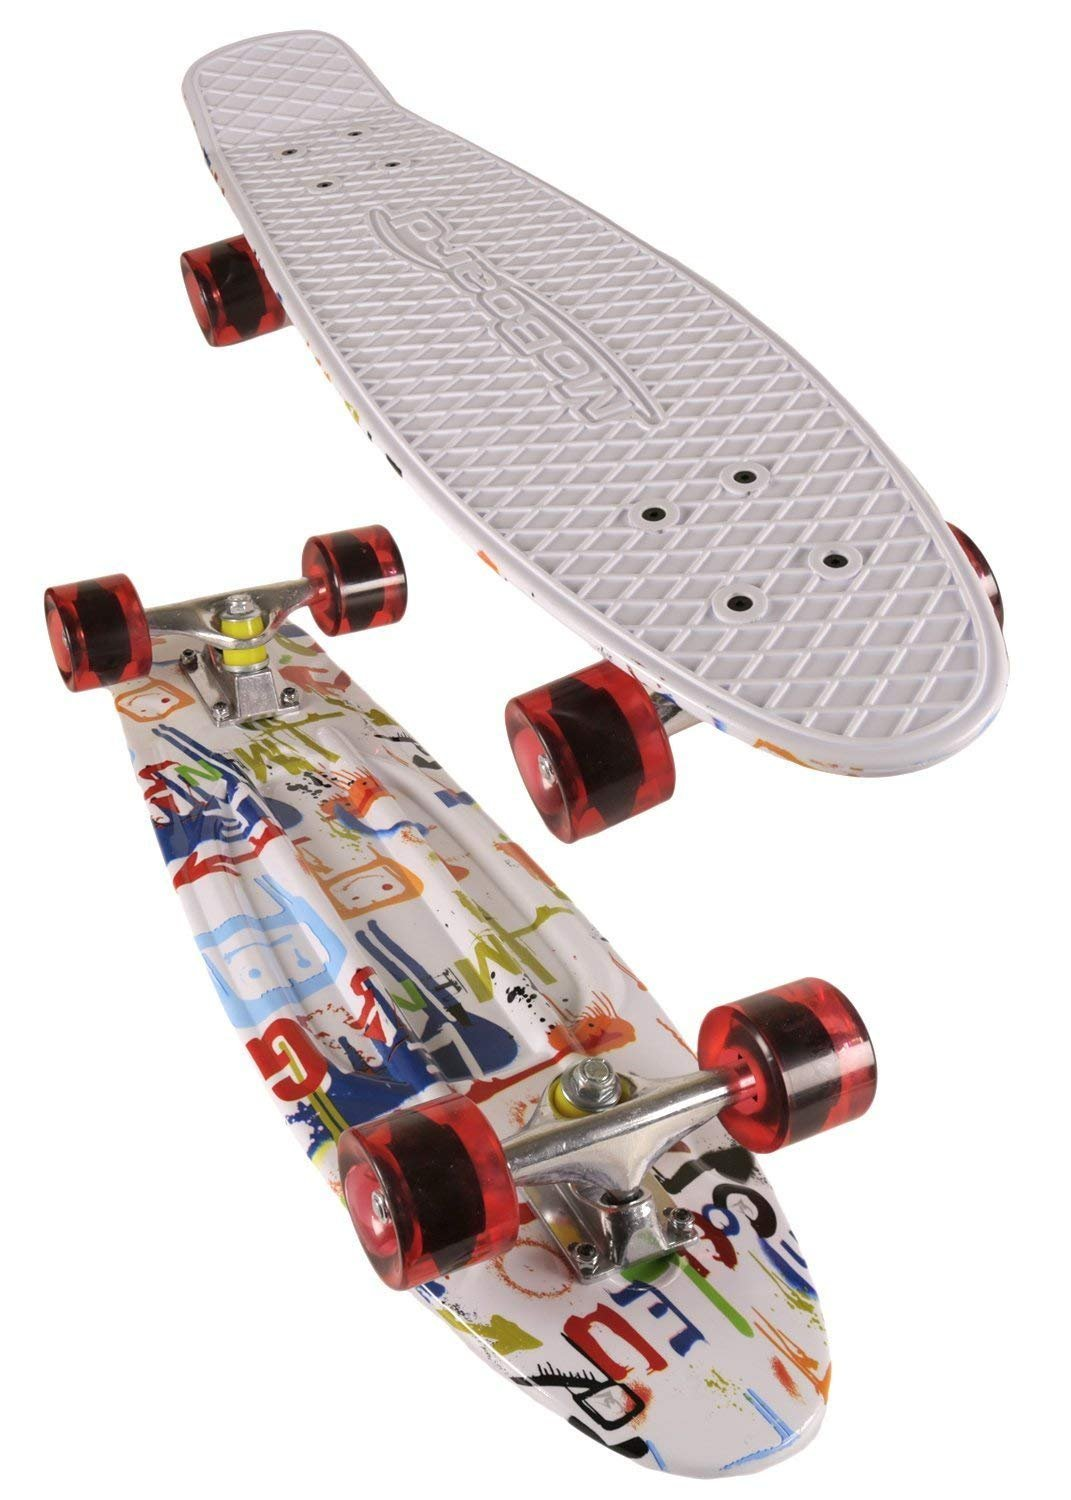 MoBoard Classic 27'' Skateboard   Pro and Beginner   27 inch Vintage Style with Interchangeable Wheels, Enhanced Bearings   Portable, Lightweight   Durable Rails. (Red - Spray Paint) by MoBoard